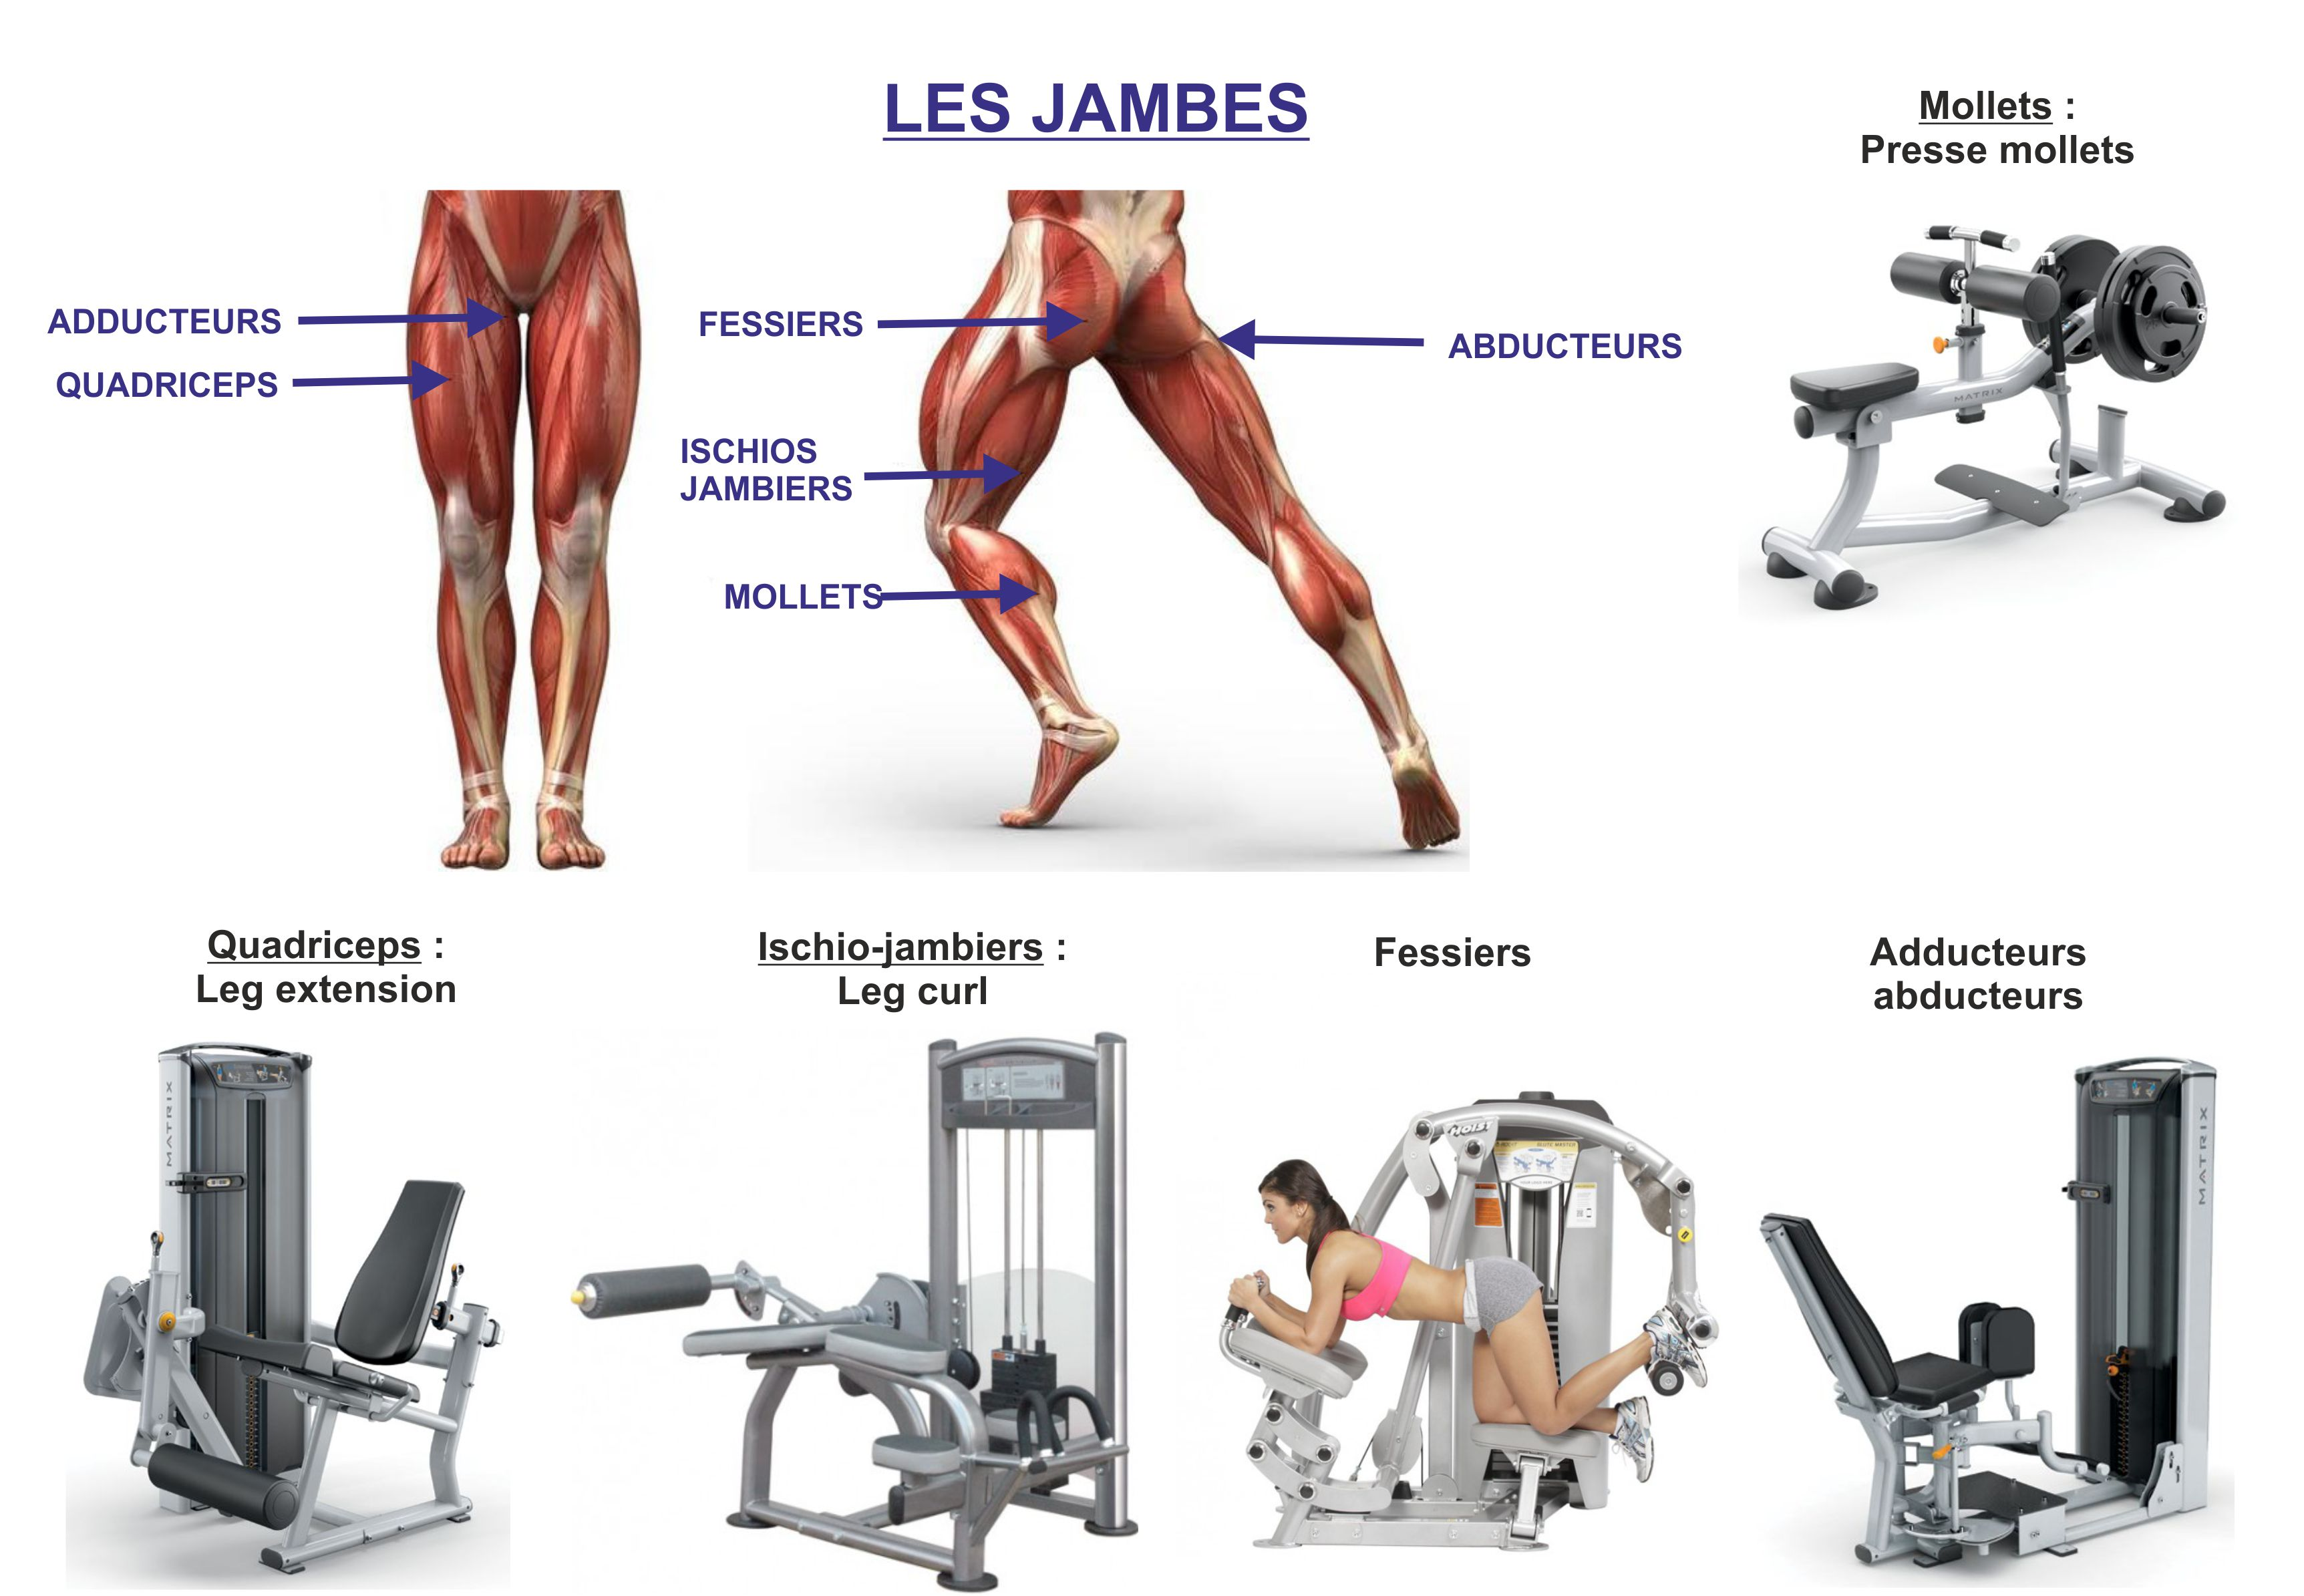 les jambes